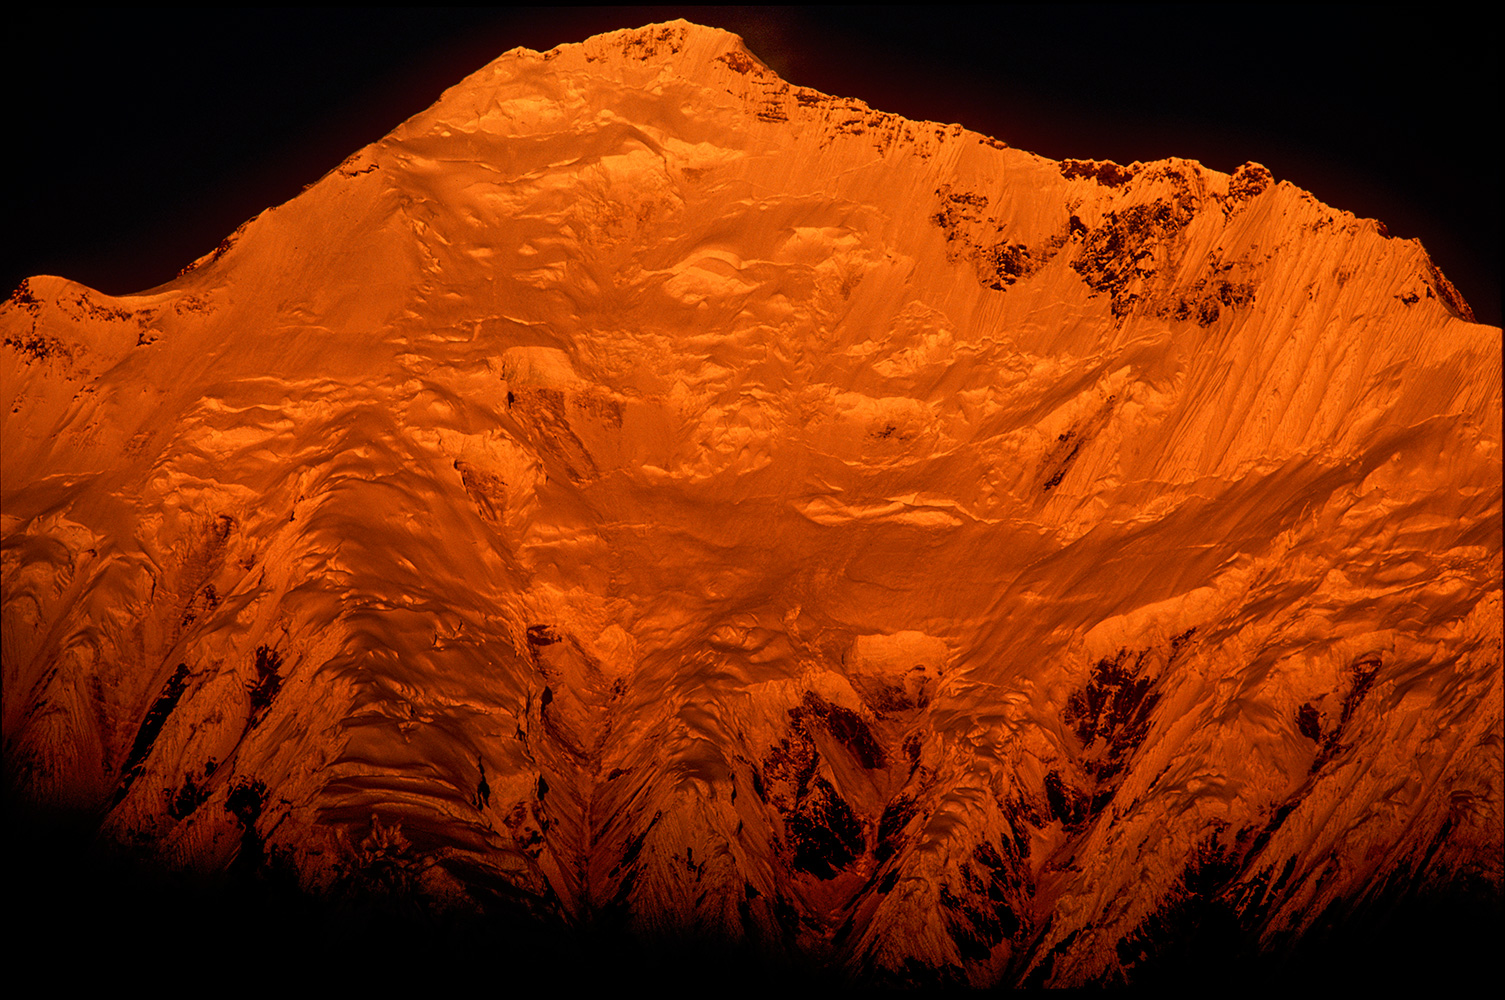 Sunrise on the Kangshung Face, from Pethang Ringmo (4983m) on the Kangshung Glacier.Nikon F5, 180mm, Fuji Velvia 100